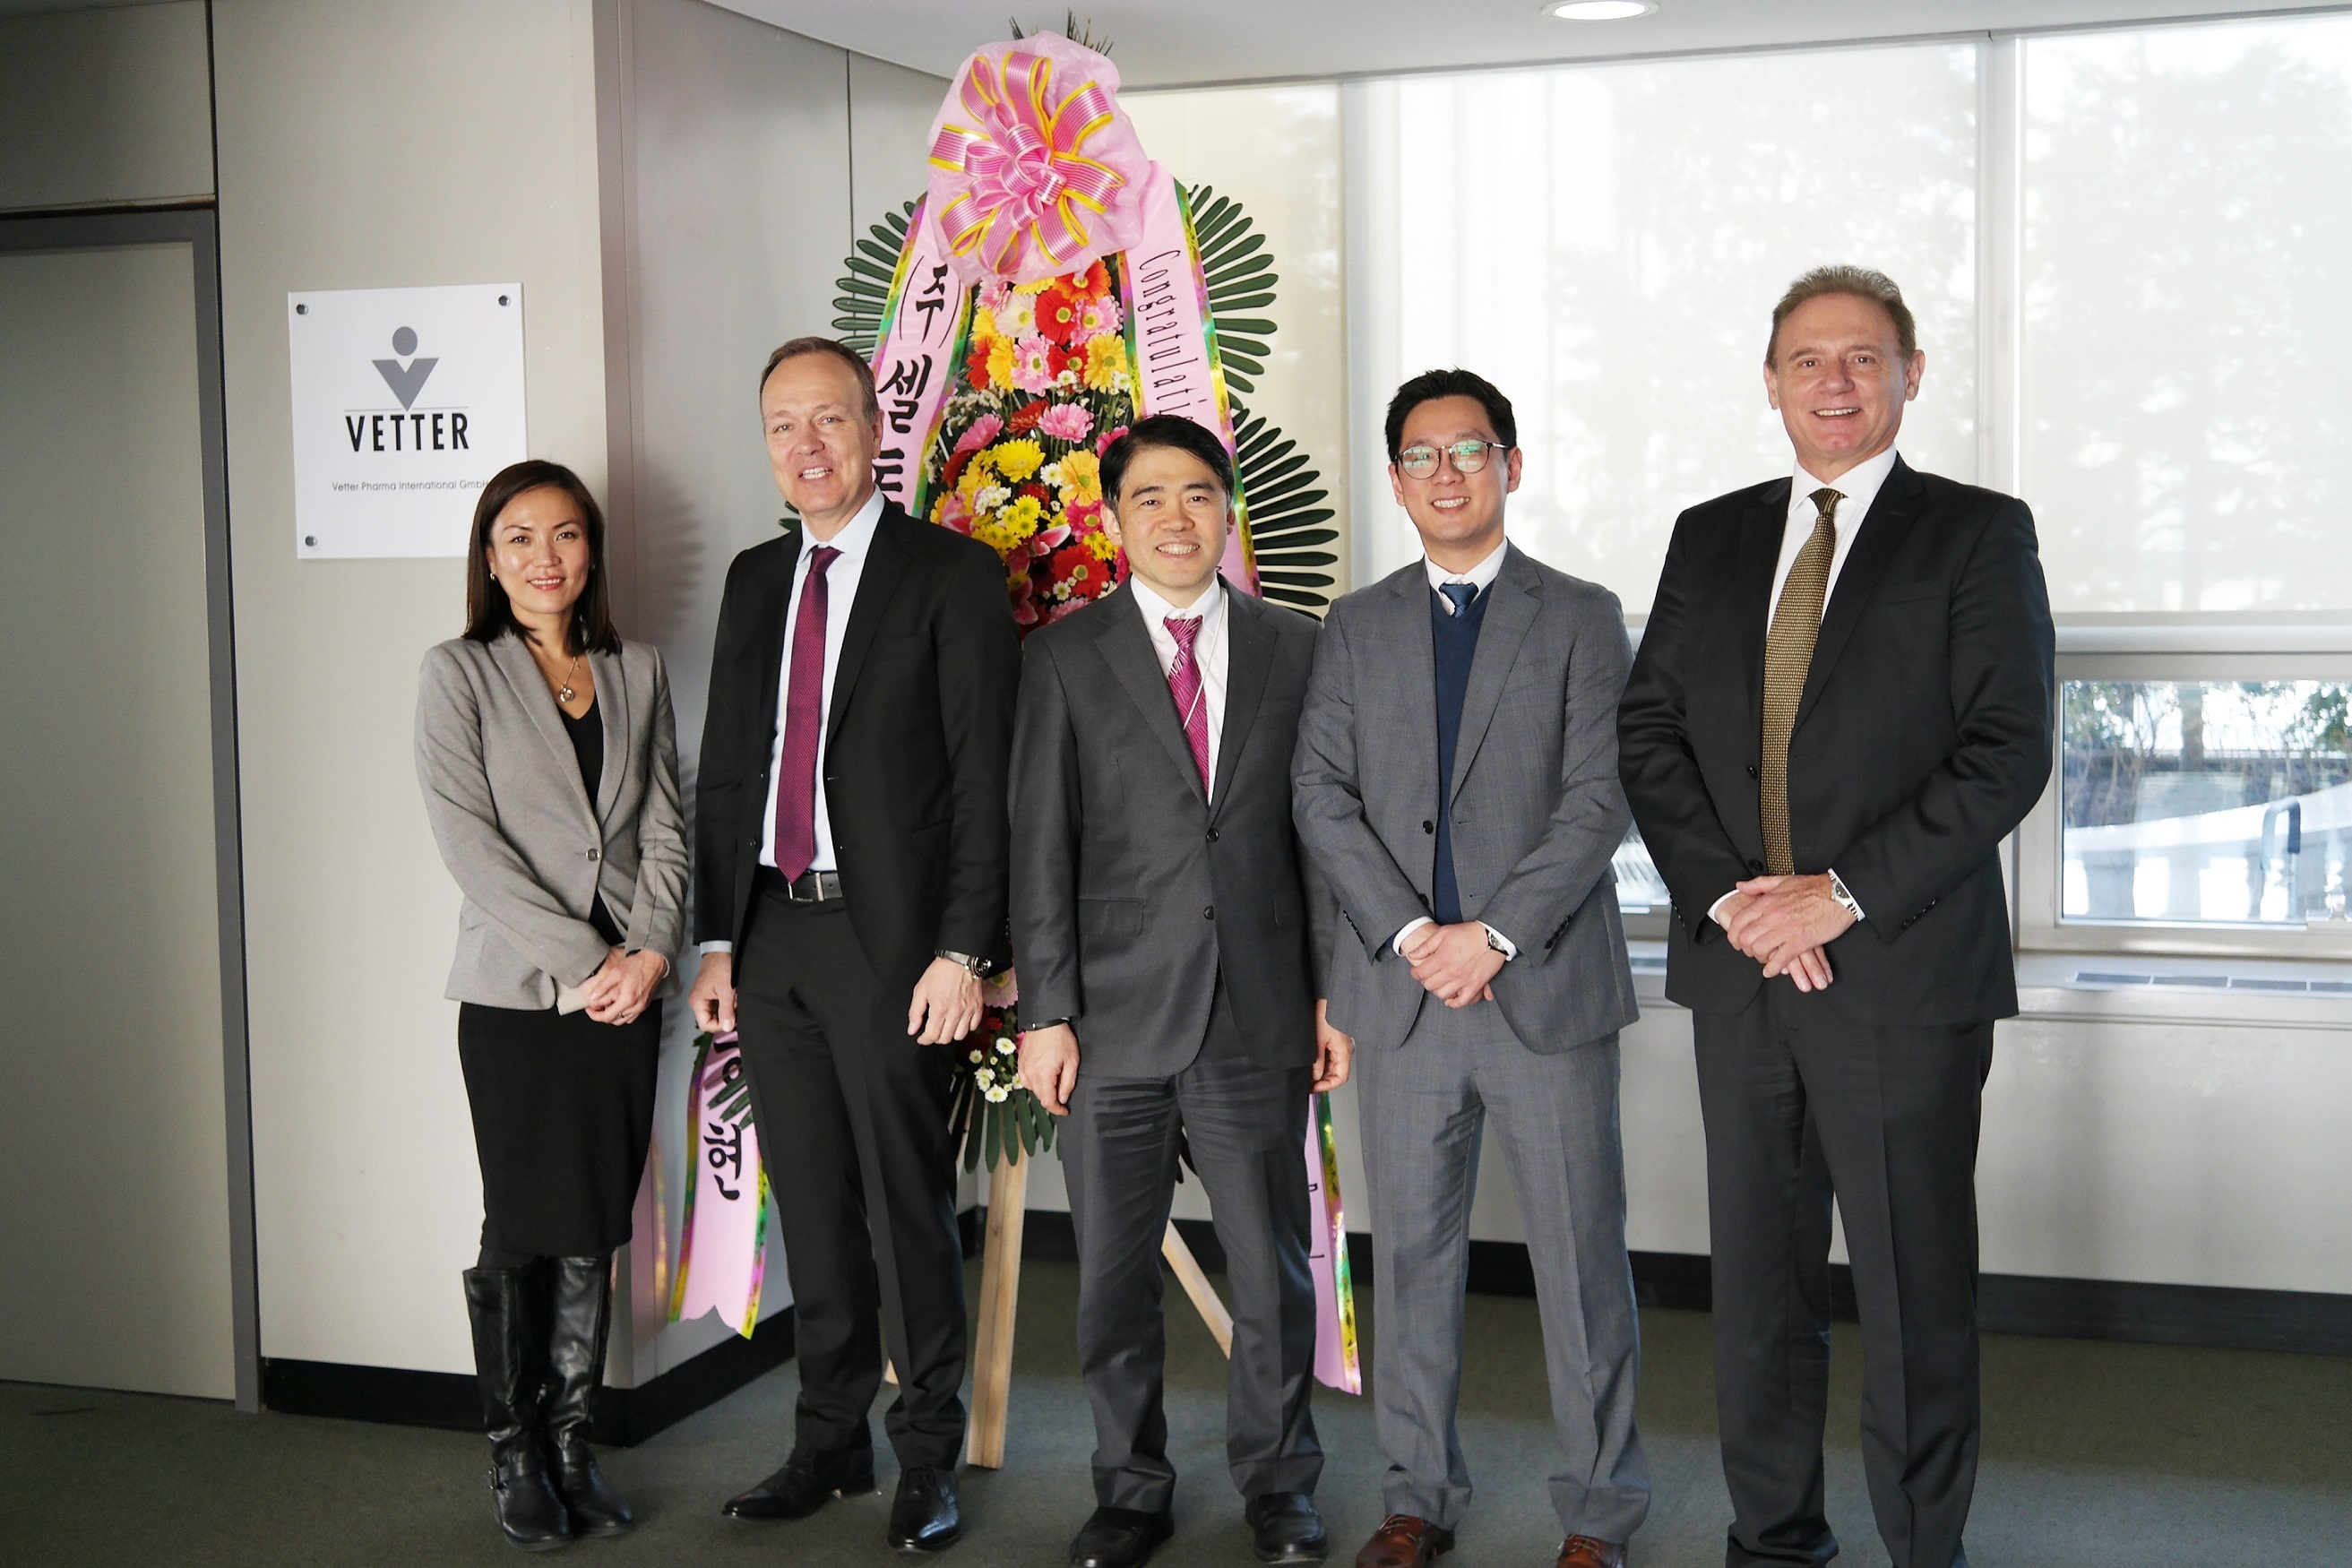 Vetter Introduces South Korea's Pharma and Biotech Community to Meet